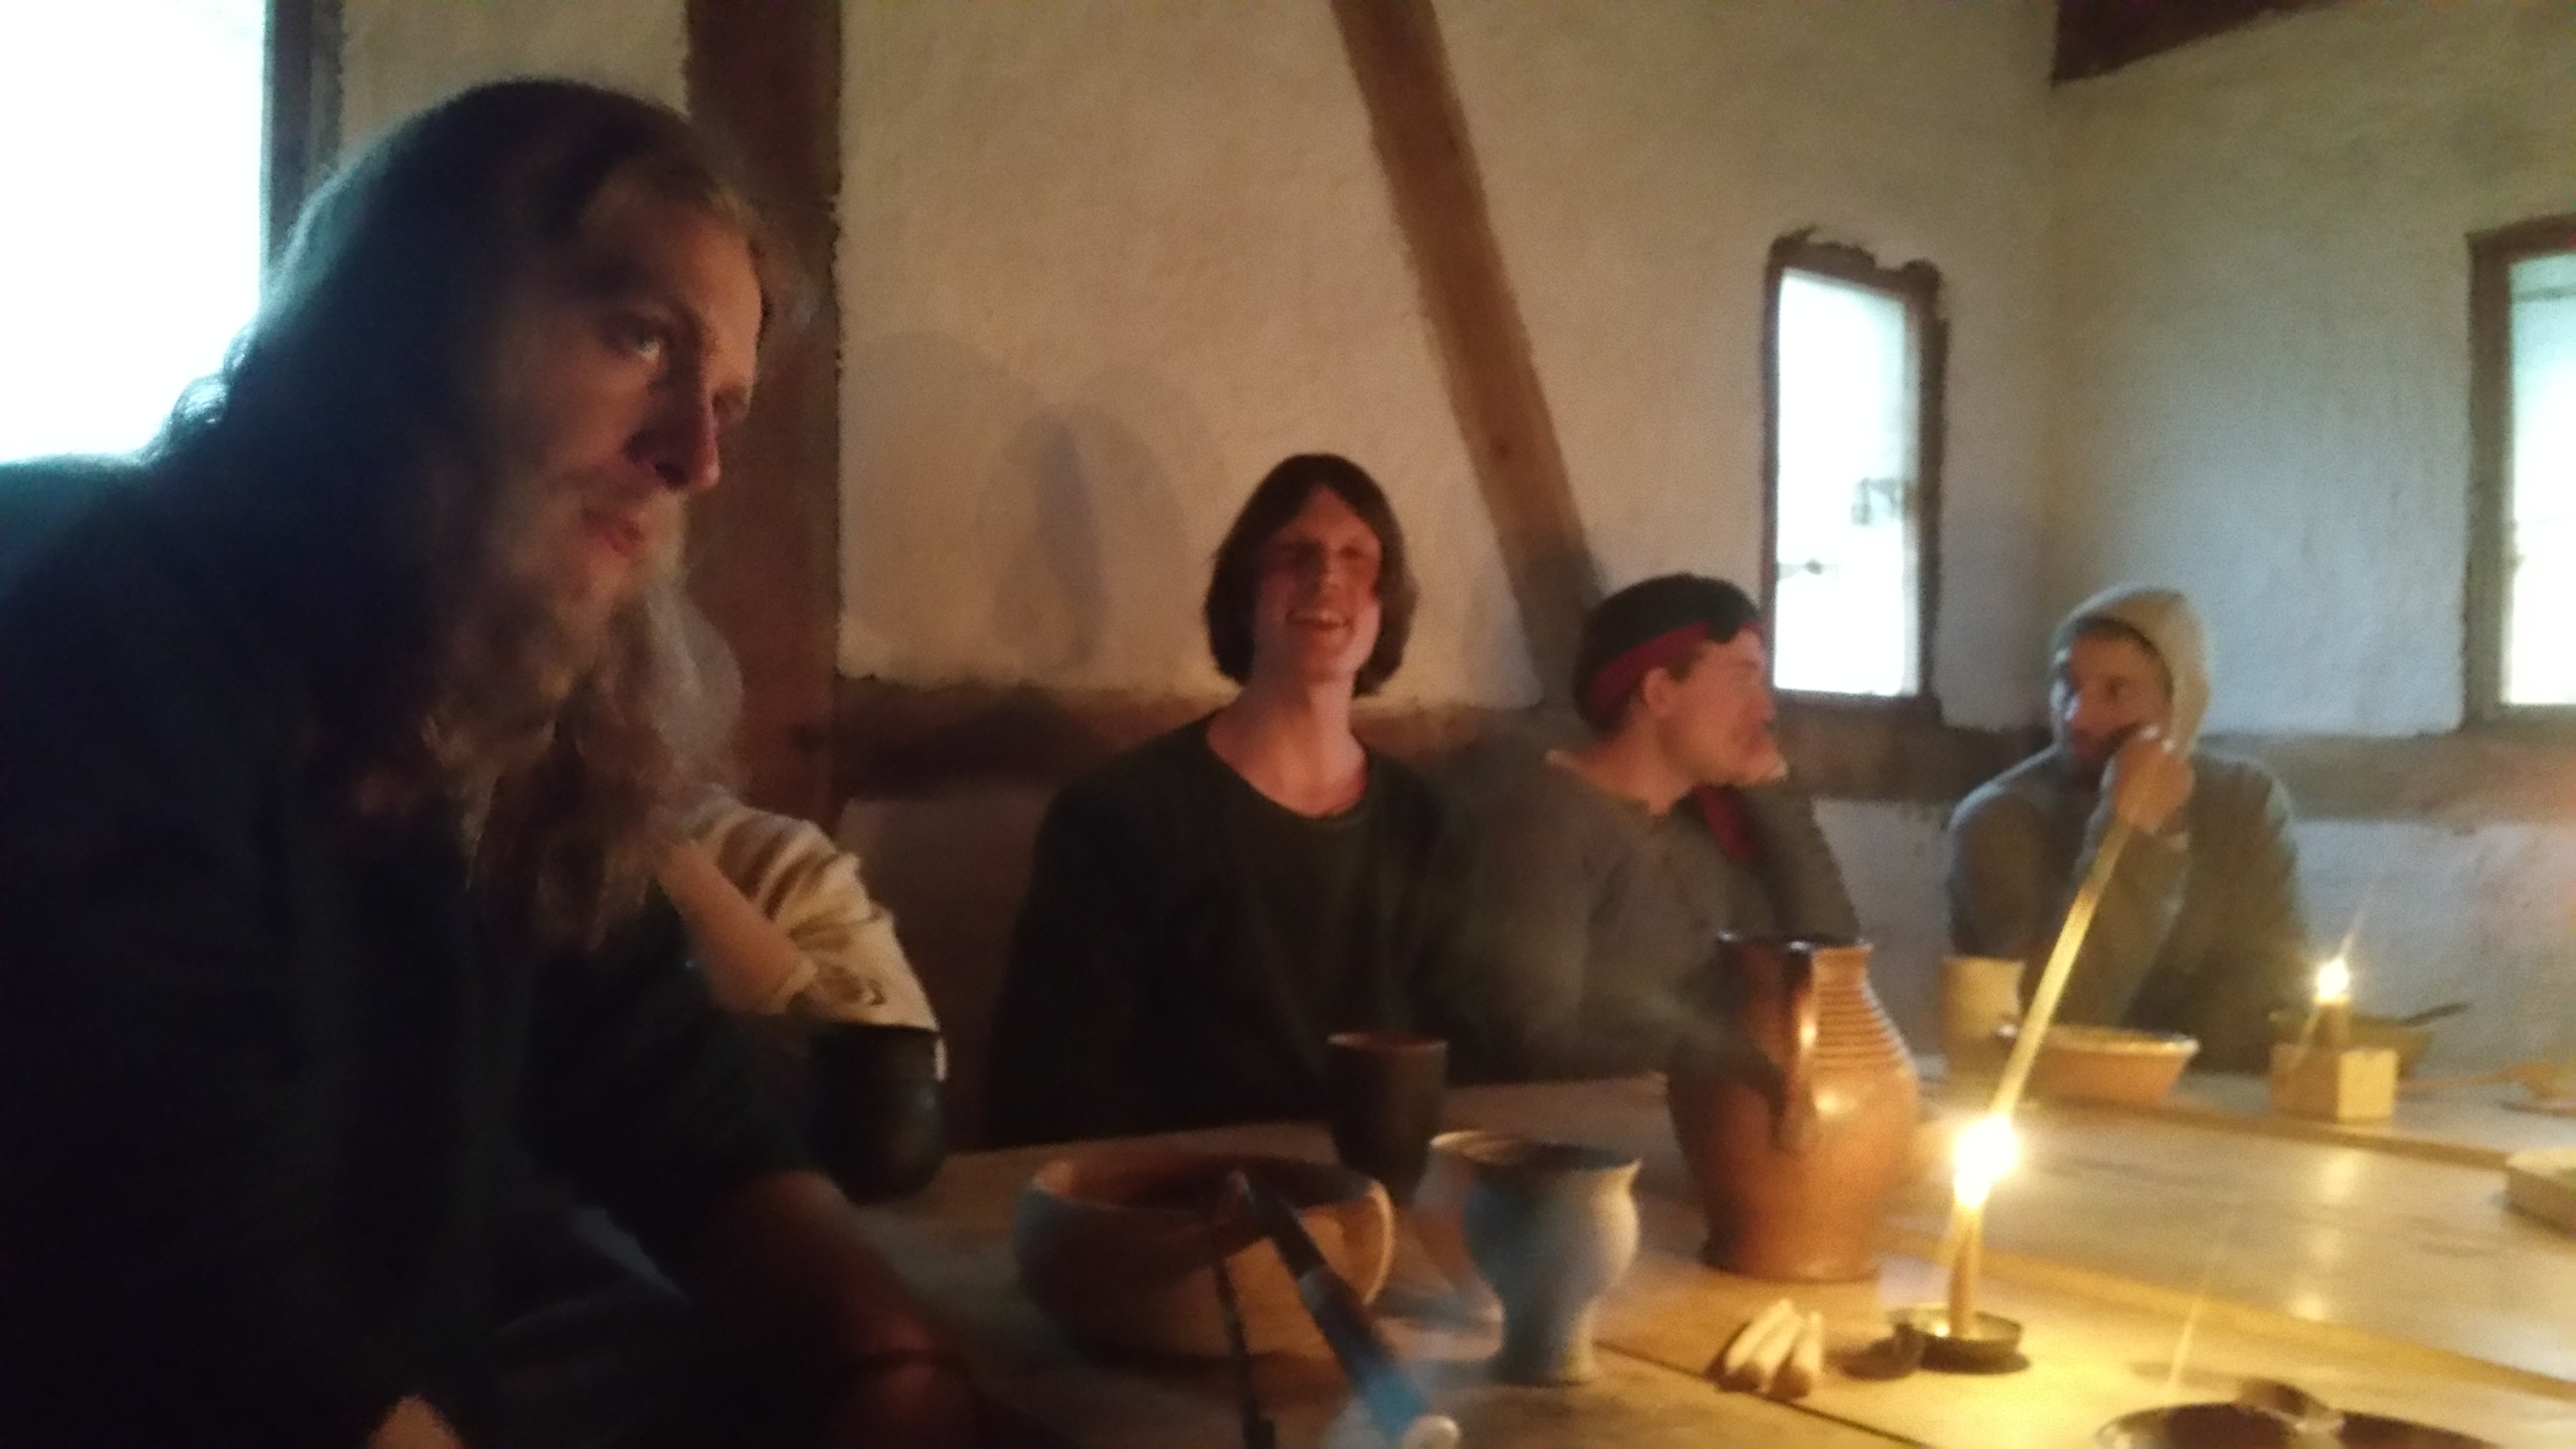 Several people sitting at a candelit table in a wattle-and-daub building